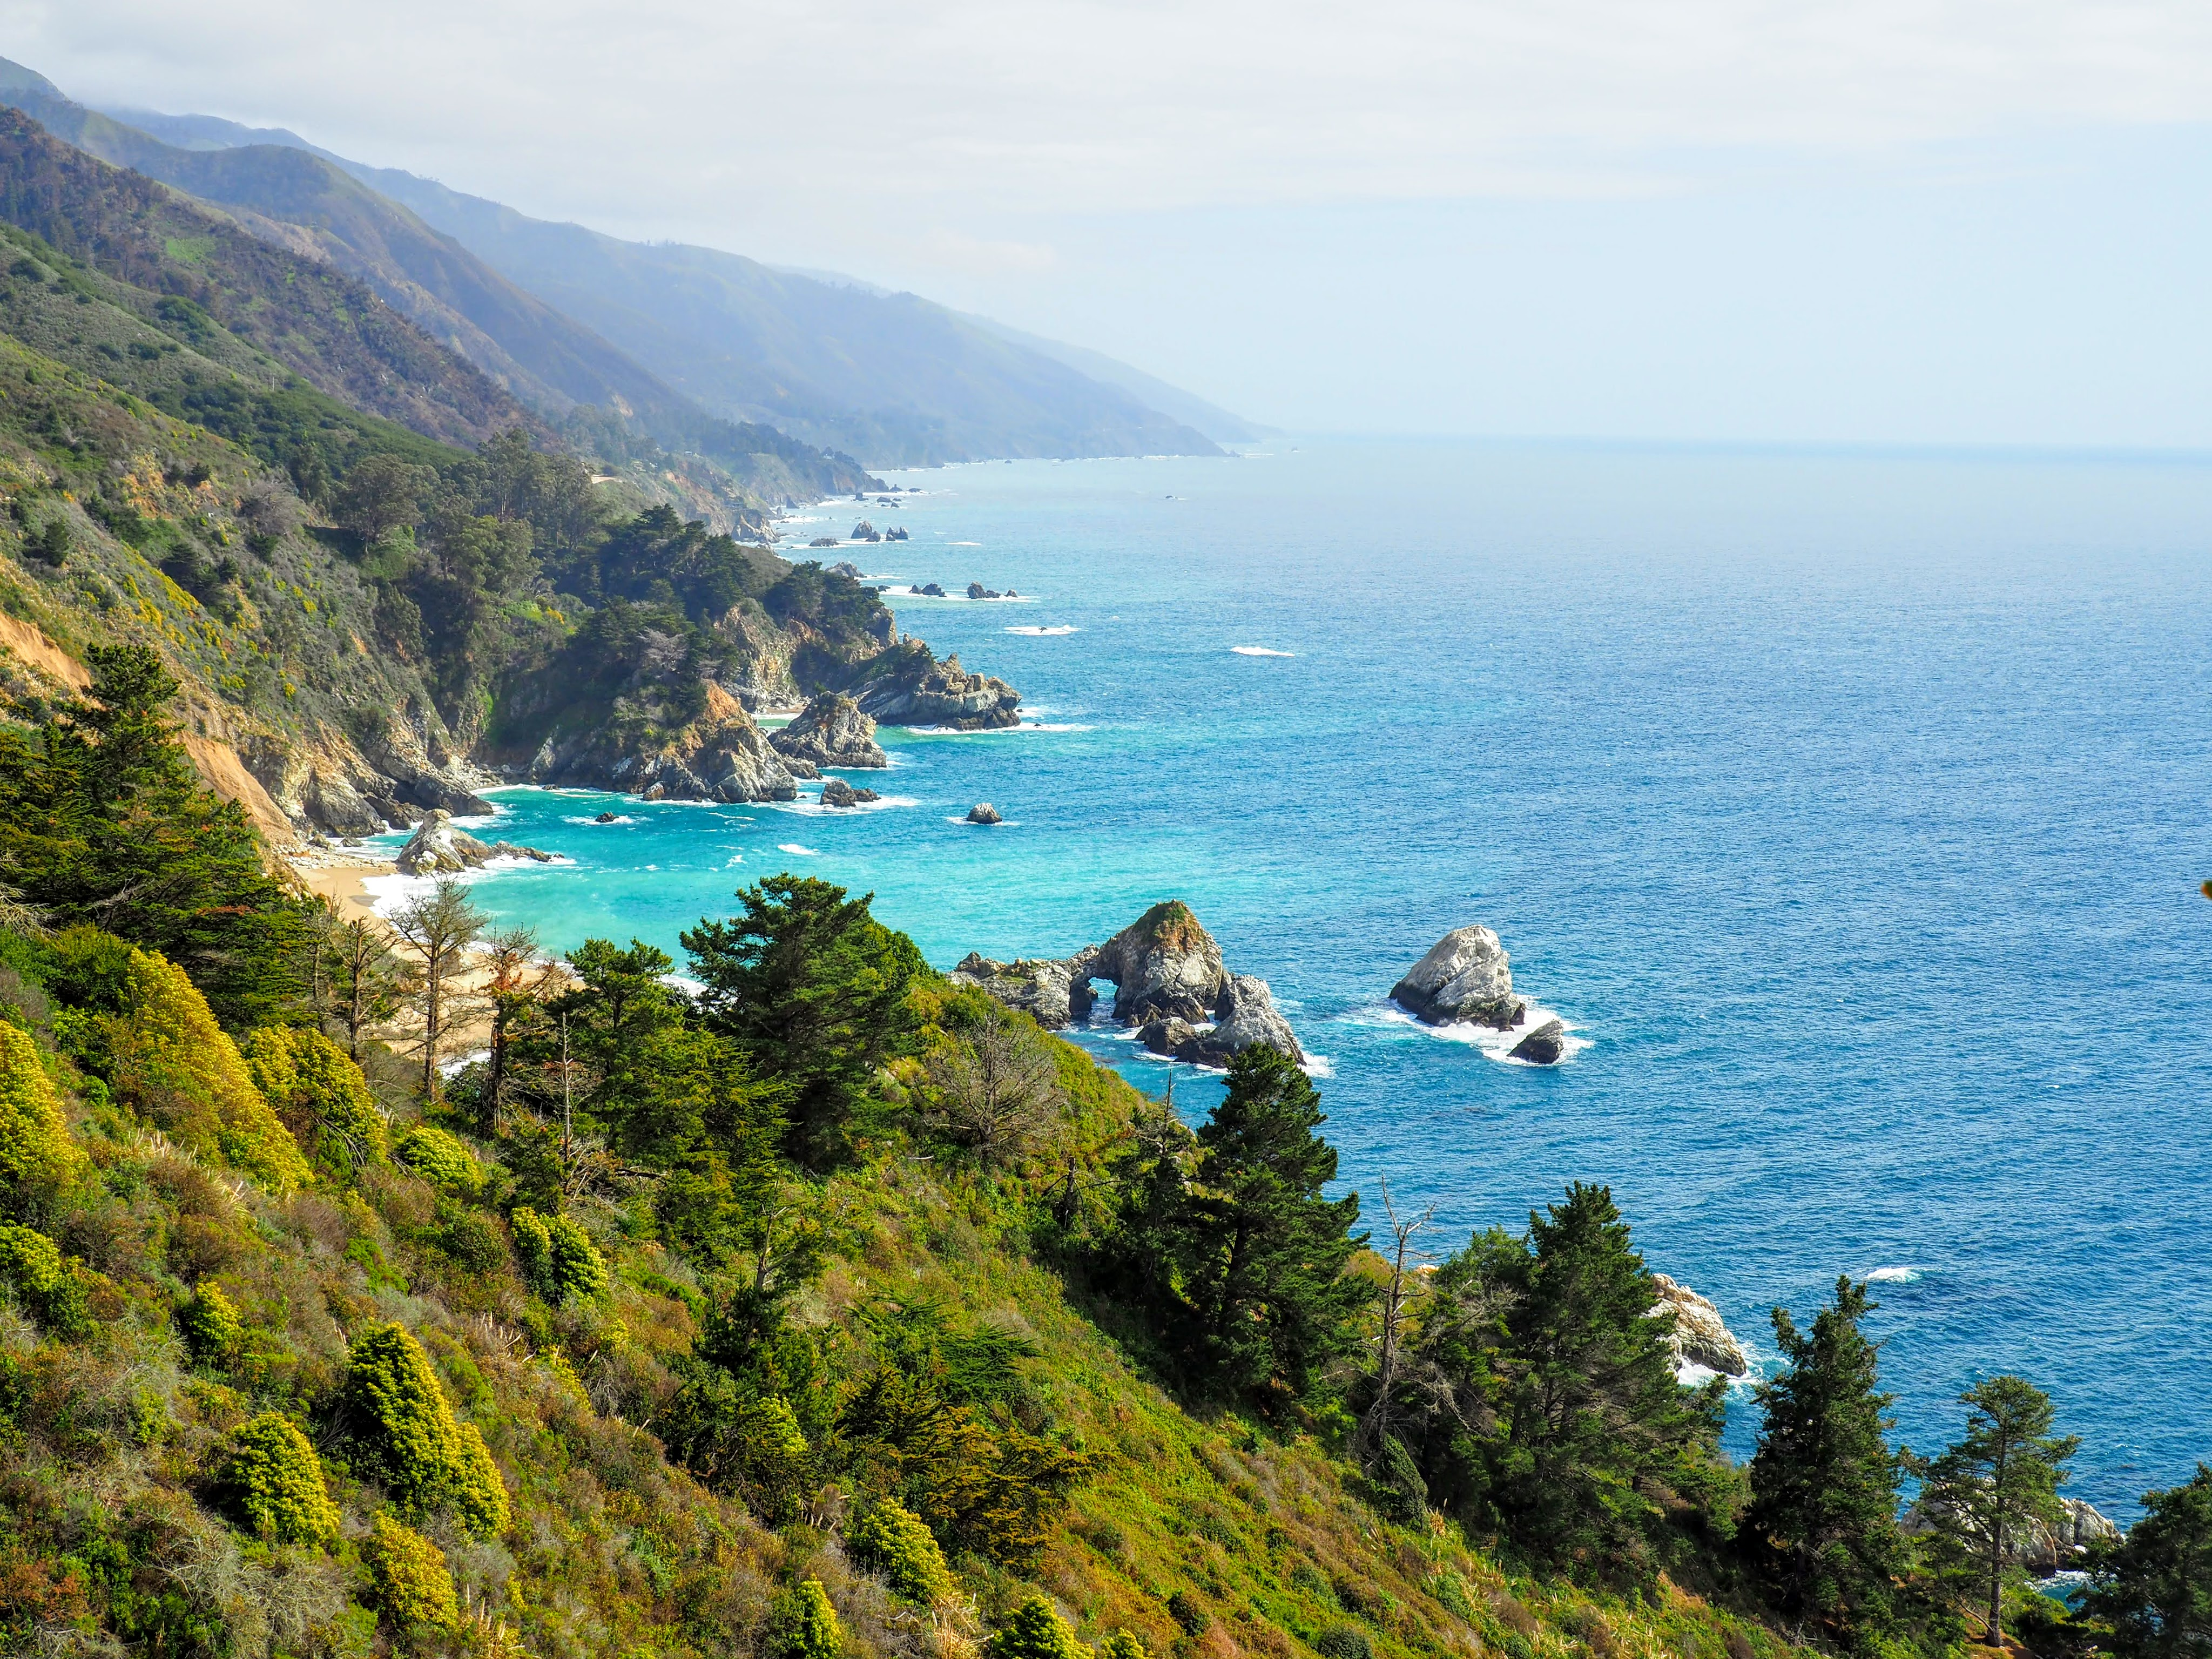 A Week in Pictures Near Big Sur